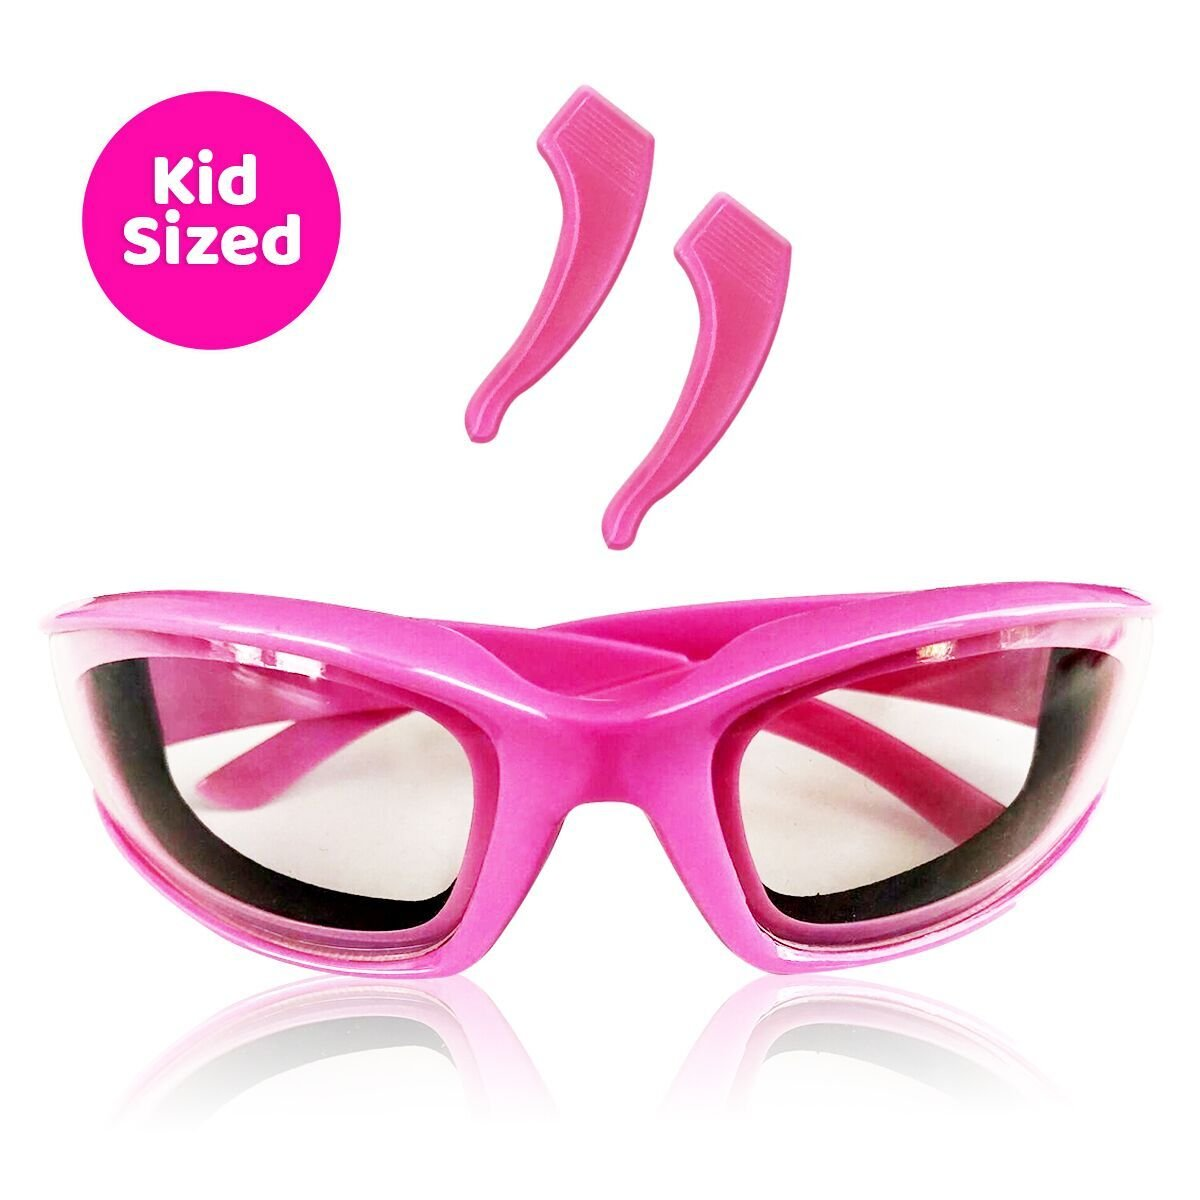 Kids Onion Goggles – Premium, Snug Fitting, Foam Lined Cooking Glasses for Kids Offer 100% TEAR FREE Protection from Onions, Grease Splatter, Steam and BBQ Smoke. BEST chef eye wear for kids